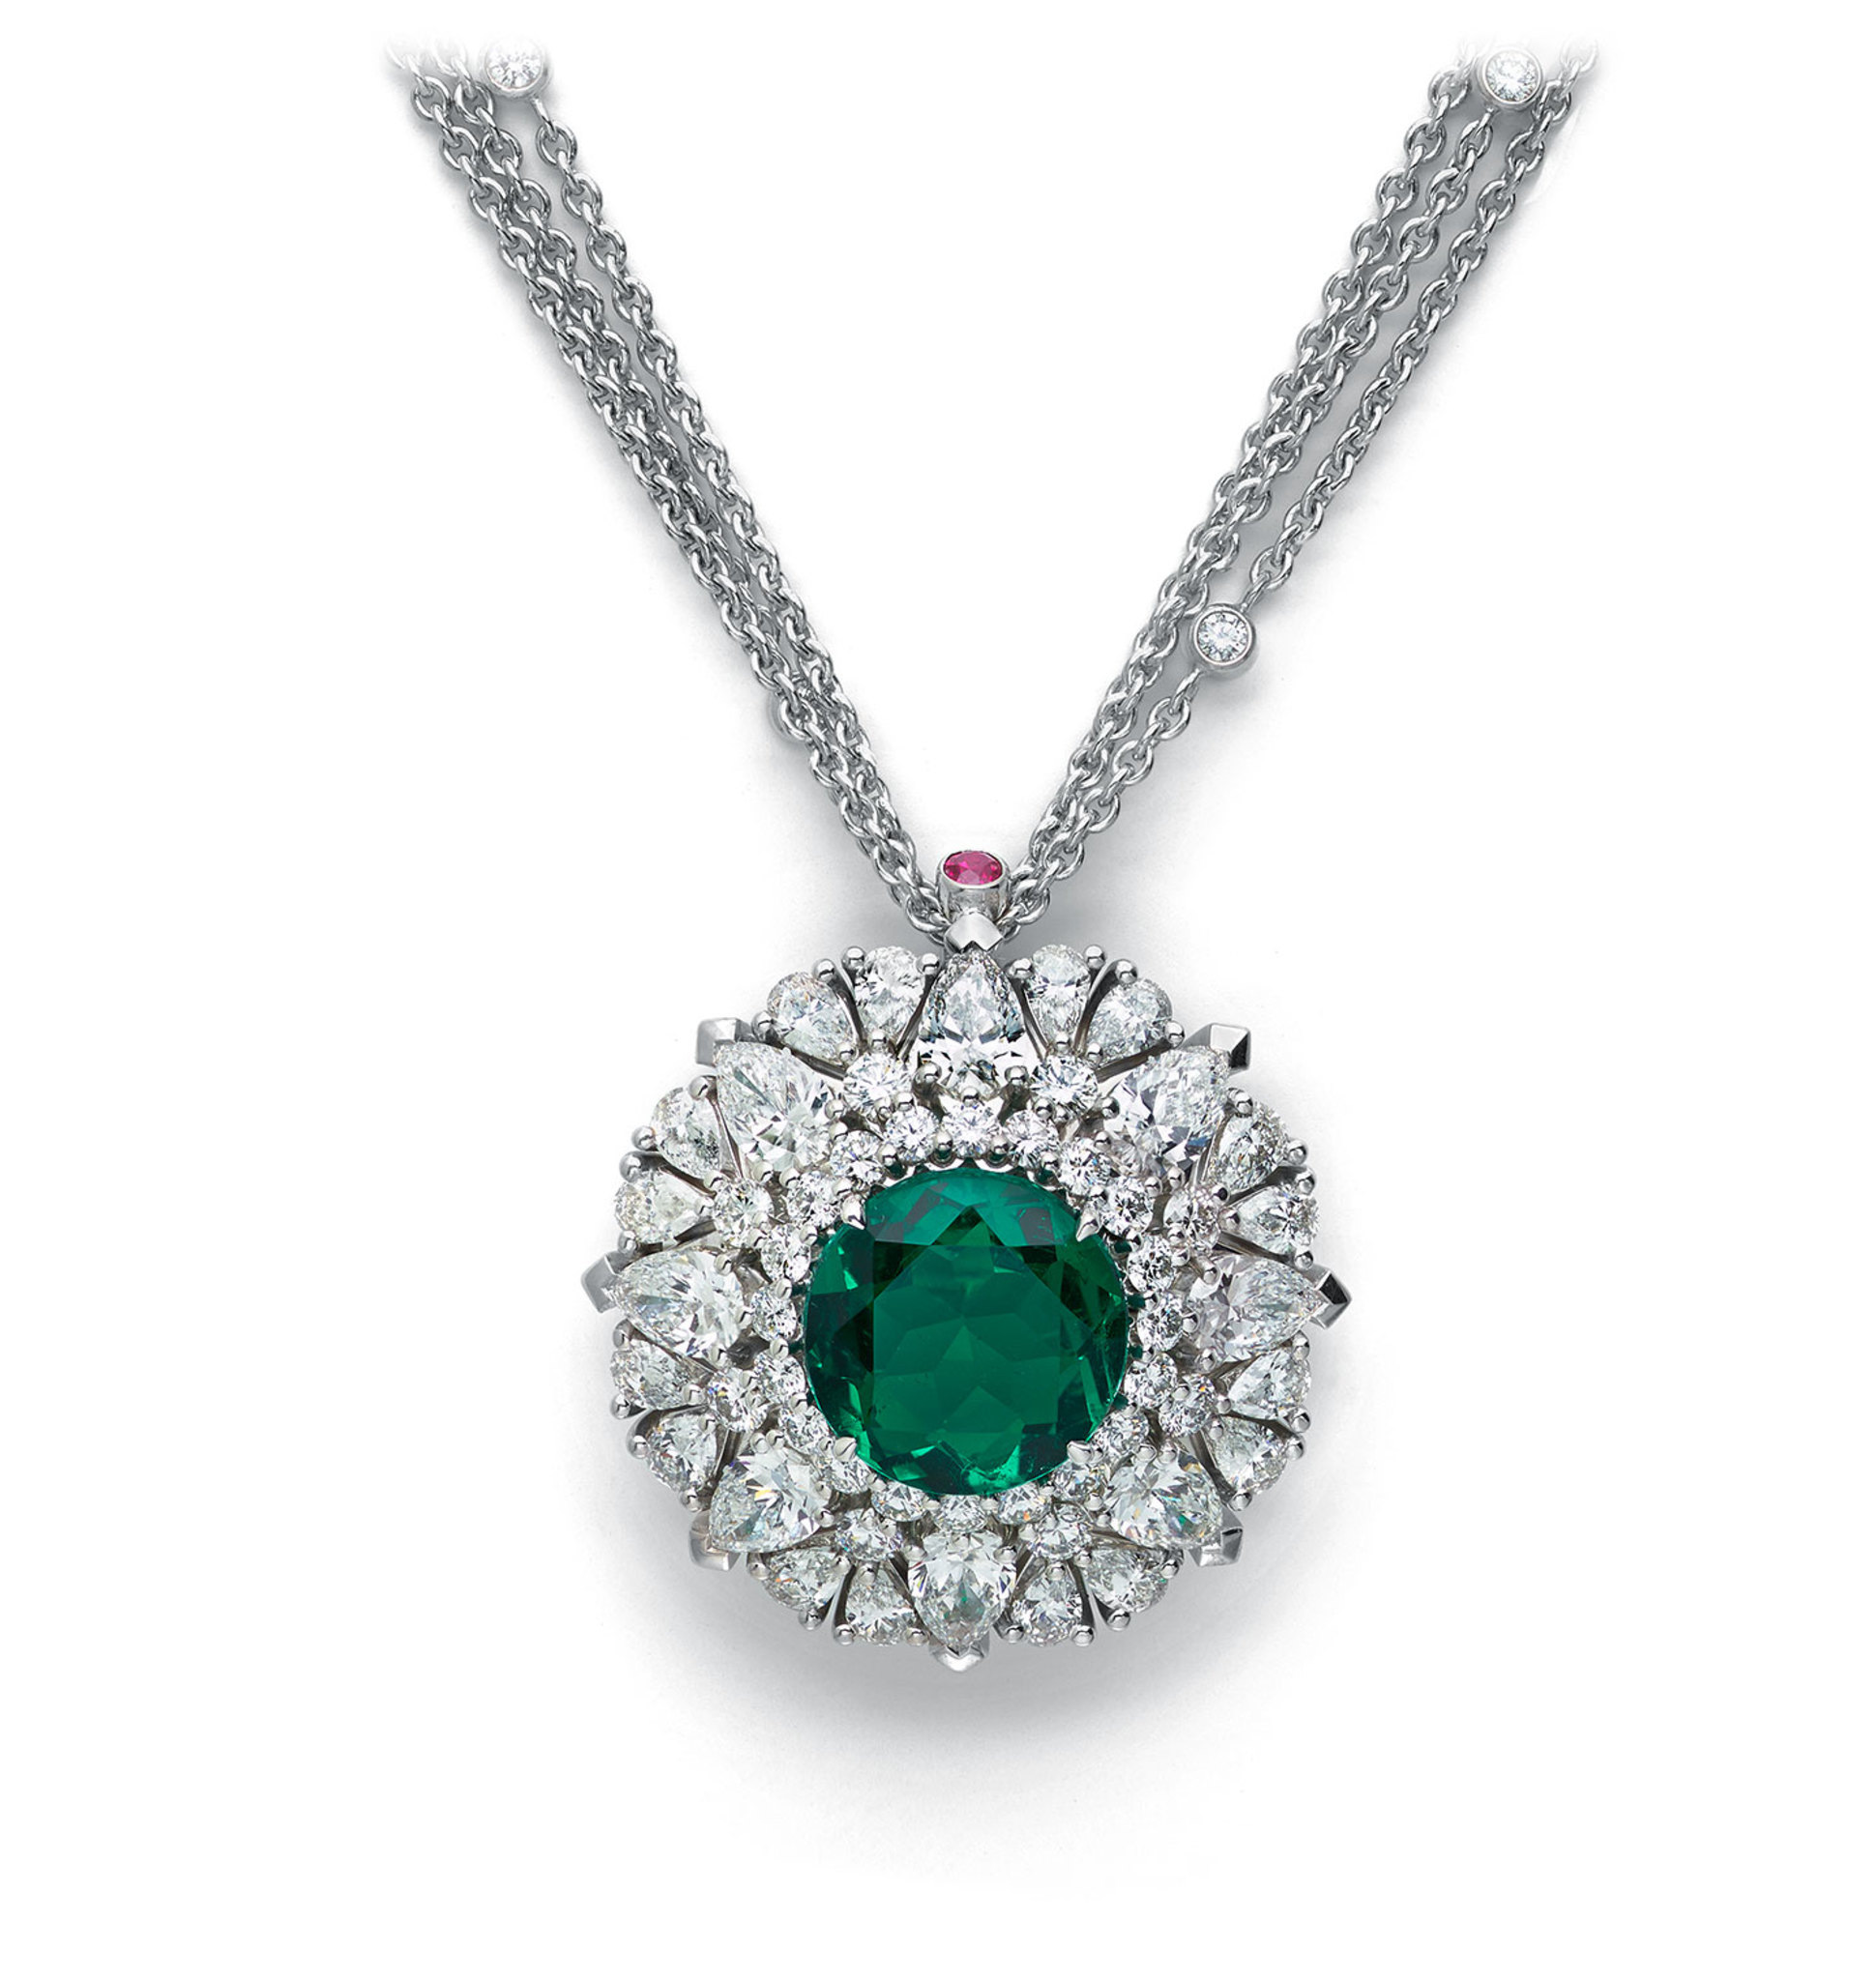 Necklace with emerald